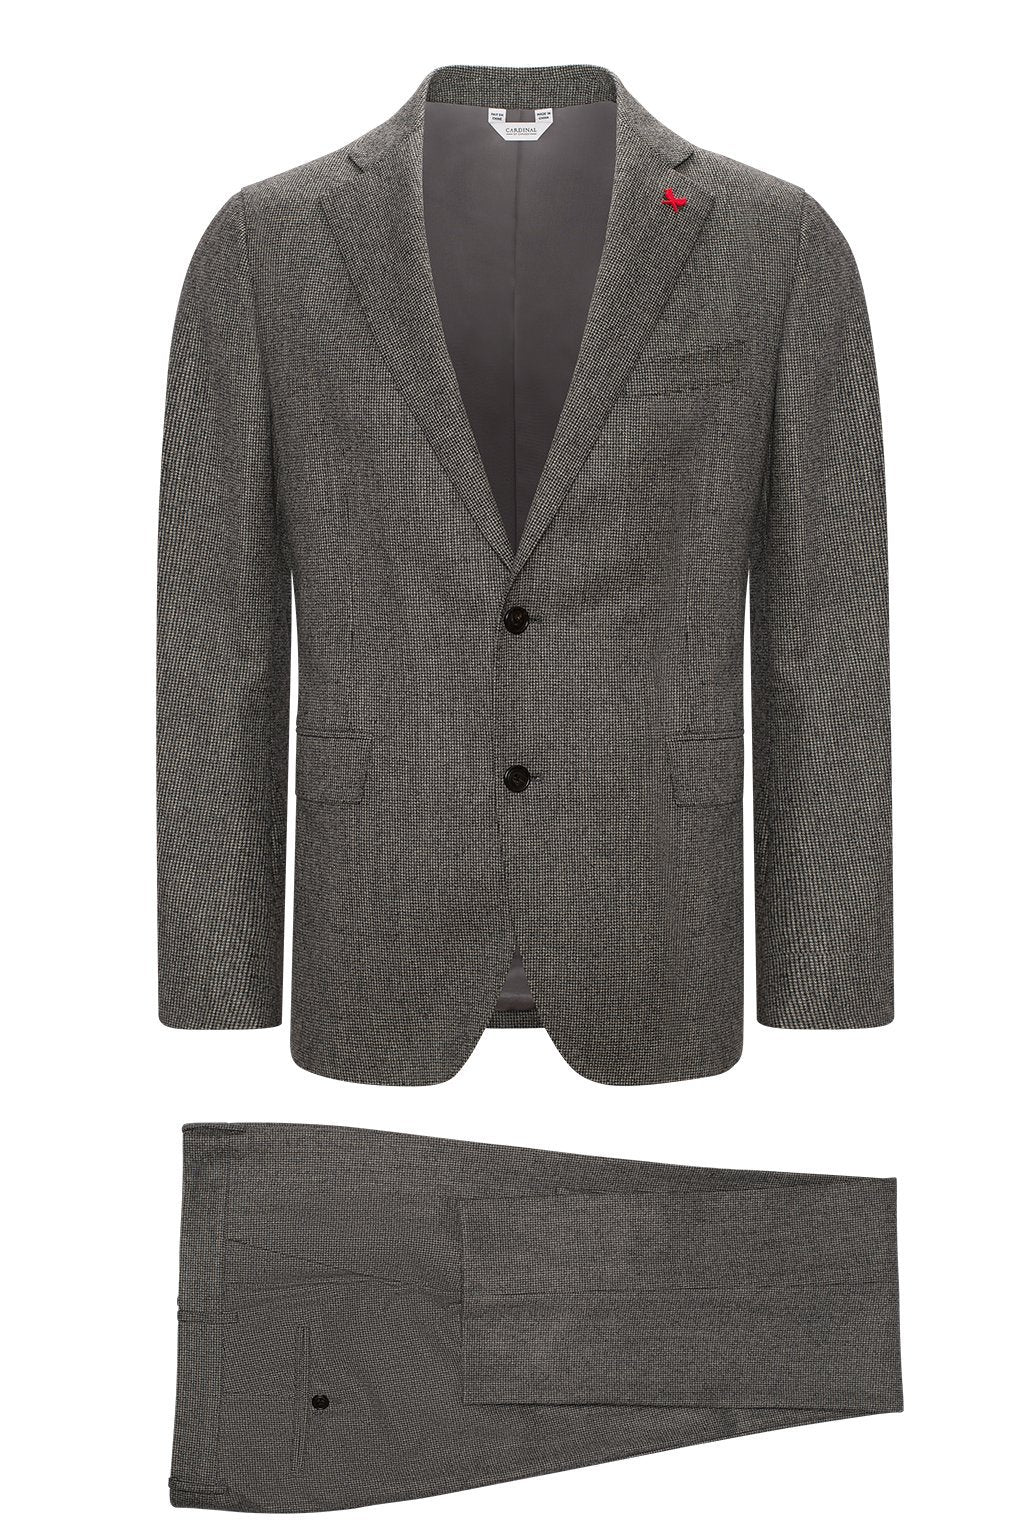 Black-Grey Winslo Modern-Slim Fit Wool Suit - Cardinal of Canada-US